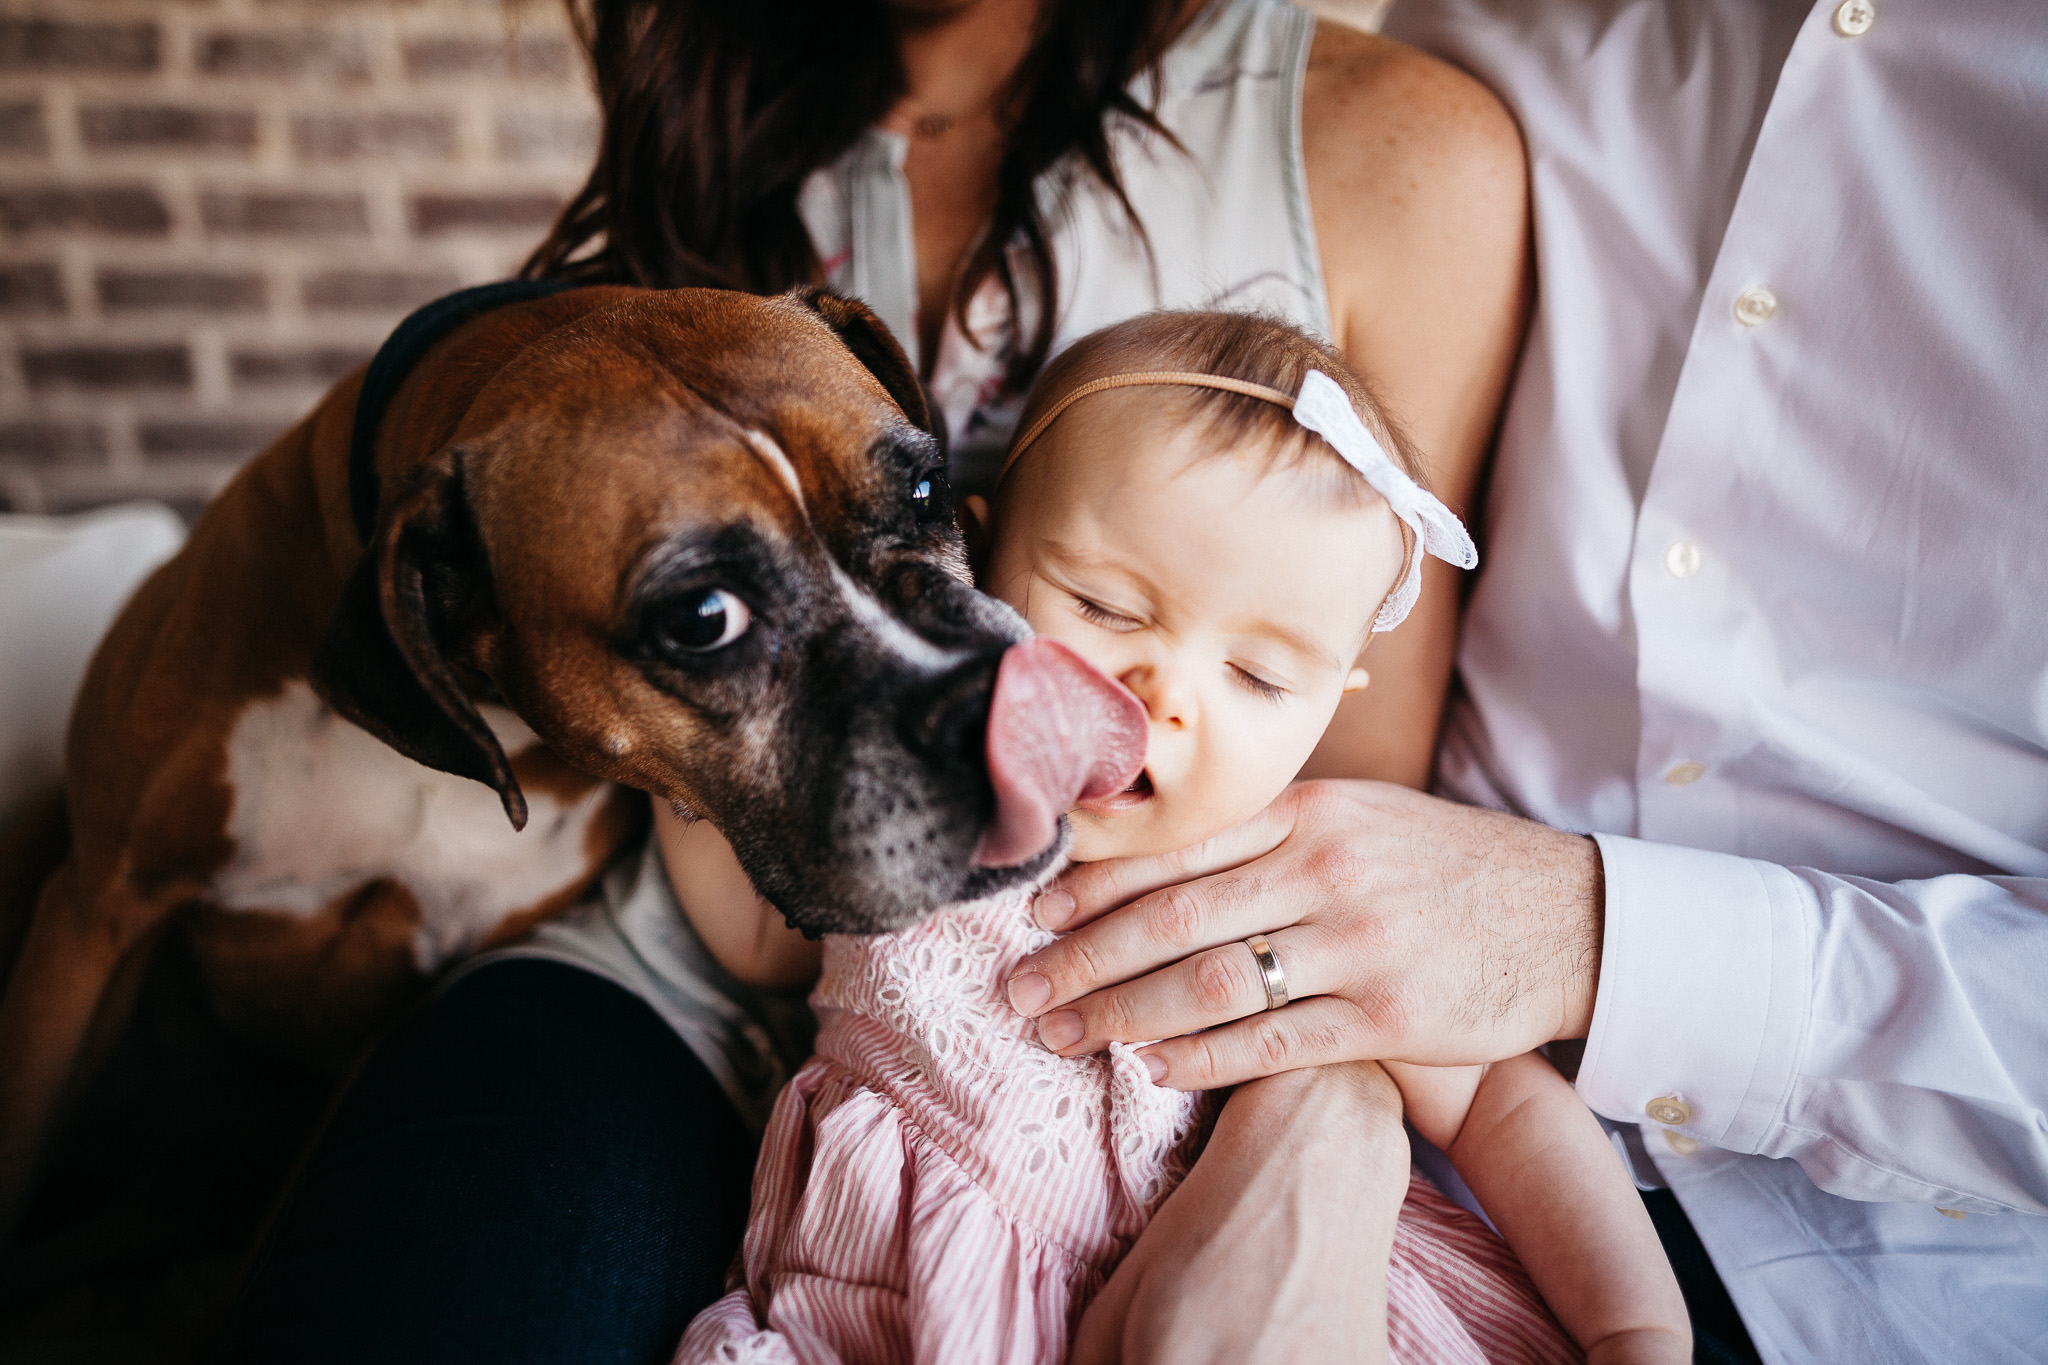 nashville family photographer photography photos pictures session dog pets puppy licking infant baby toddler outdoor thompson's station franklin tennessee brentwood bow cute